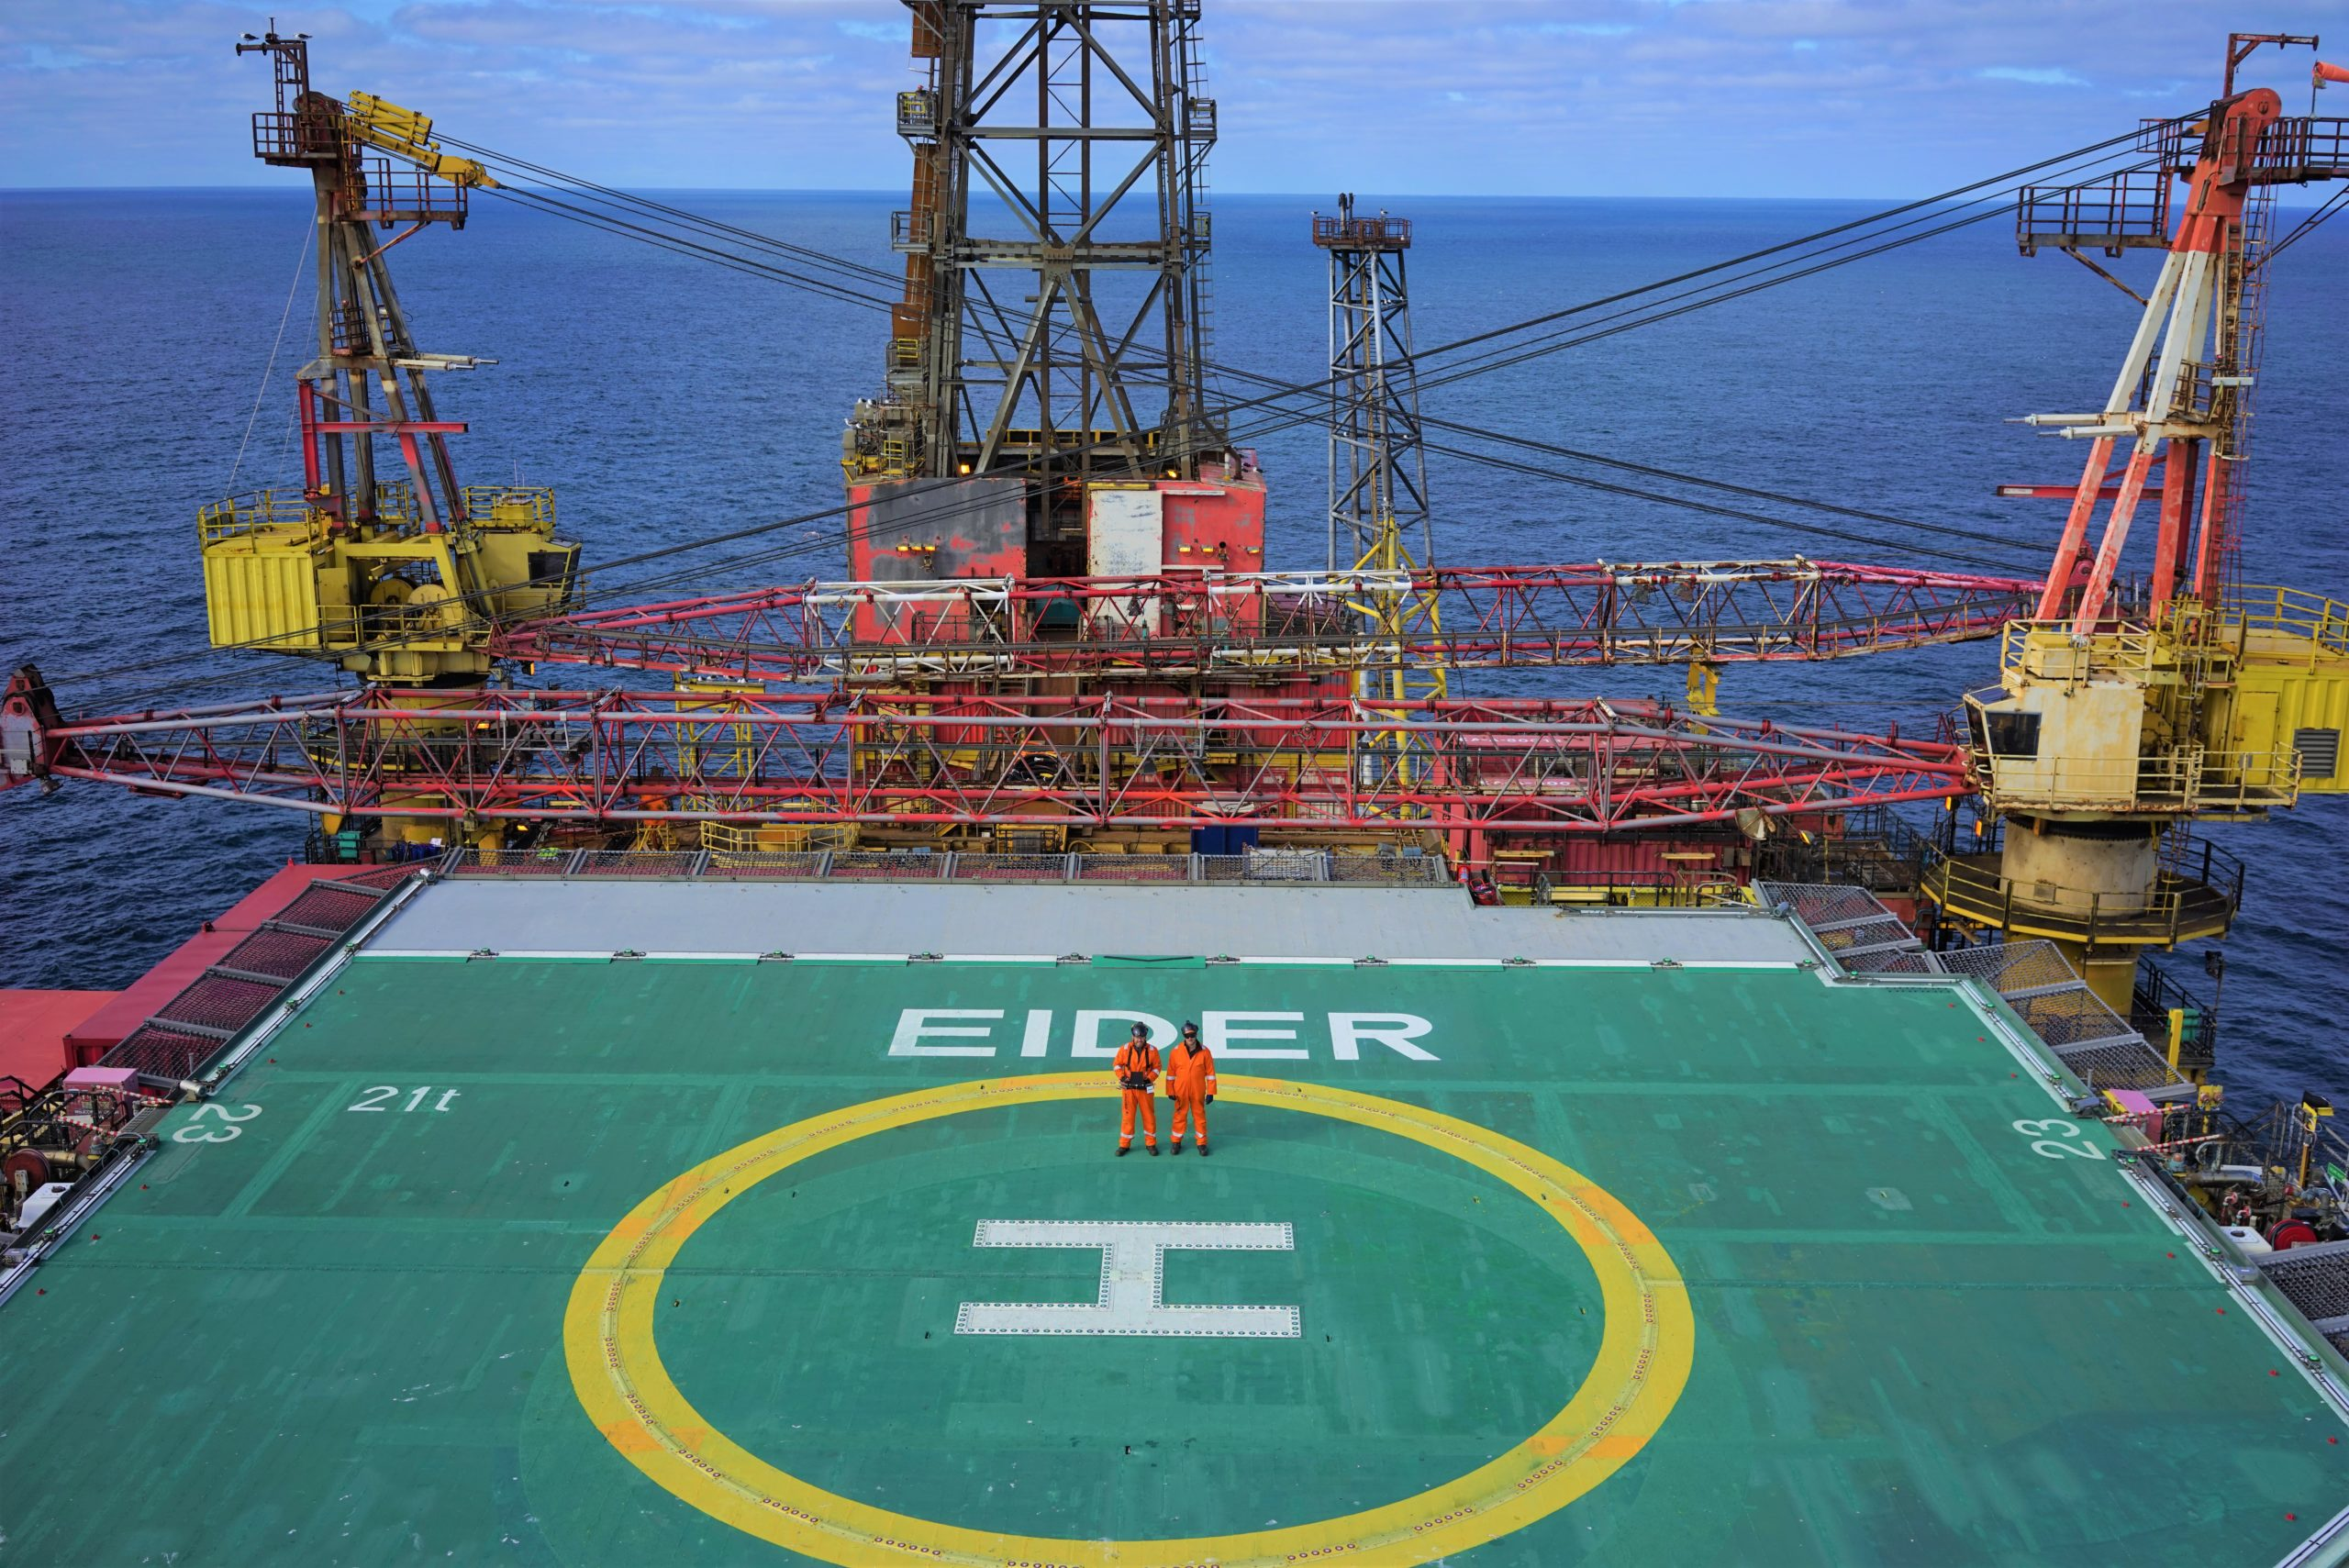 Texo DSI Delivers 3D Digital Twins in the North Sea